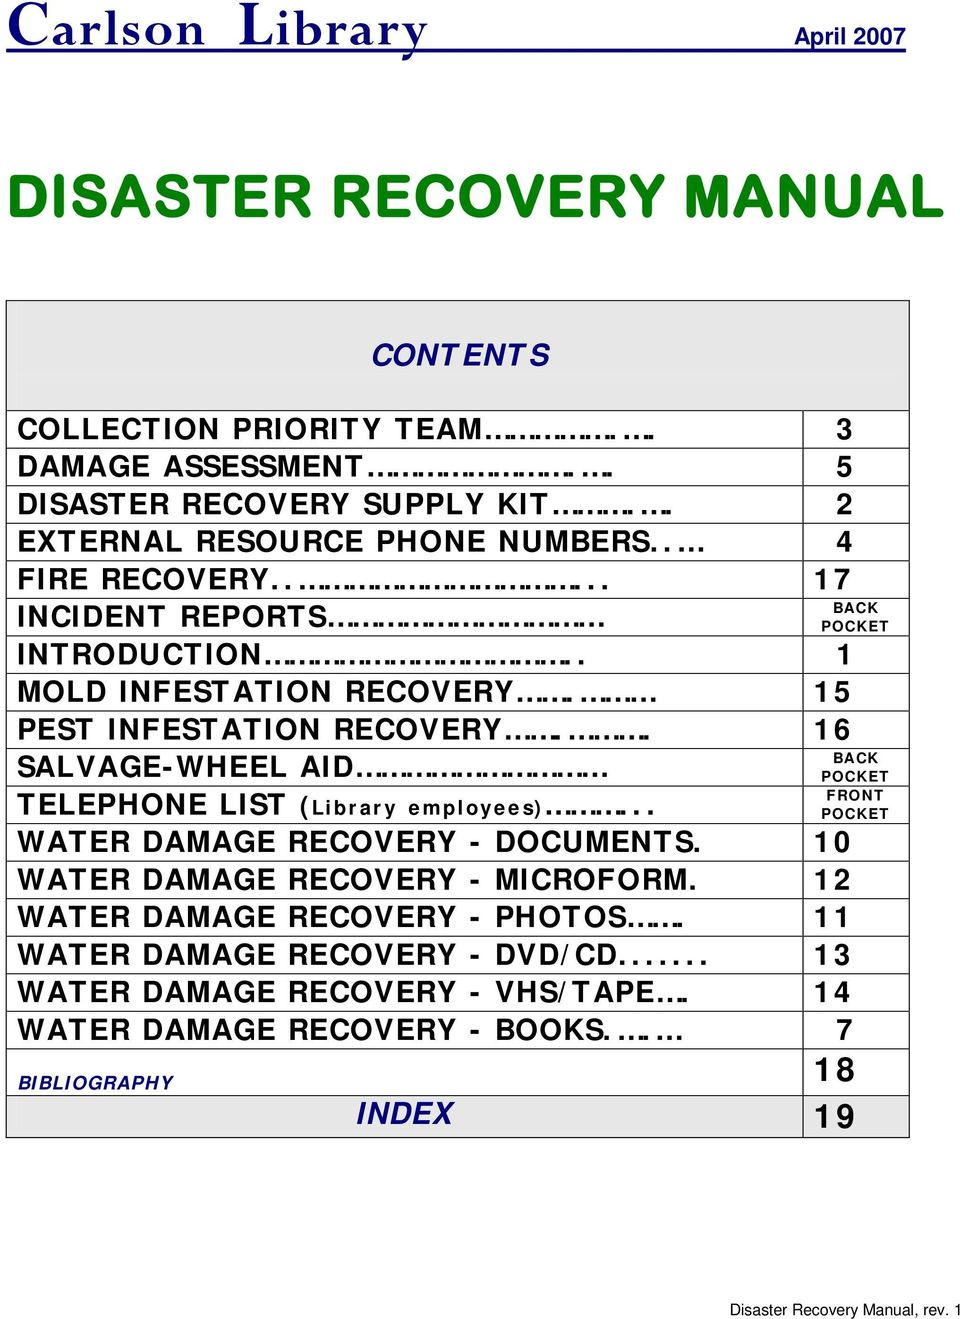 . 16 SALVAGE-WHEEL AID TELEPHONE LIST (Library employees)... BACK POCKET BACK POCKET FRONT POCKET WATER DAMAGE RECOVERY - DOCUMENTS.